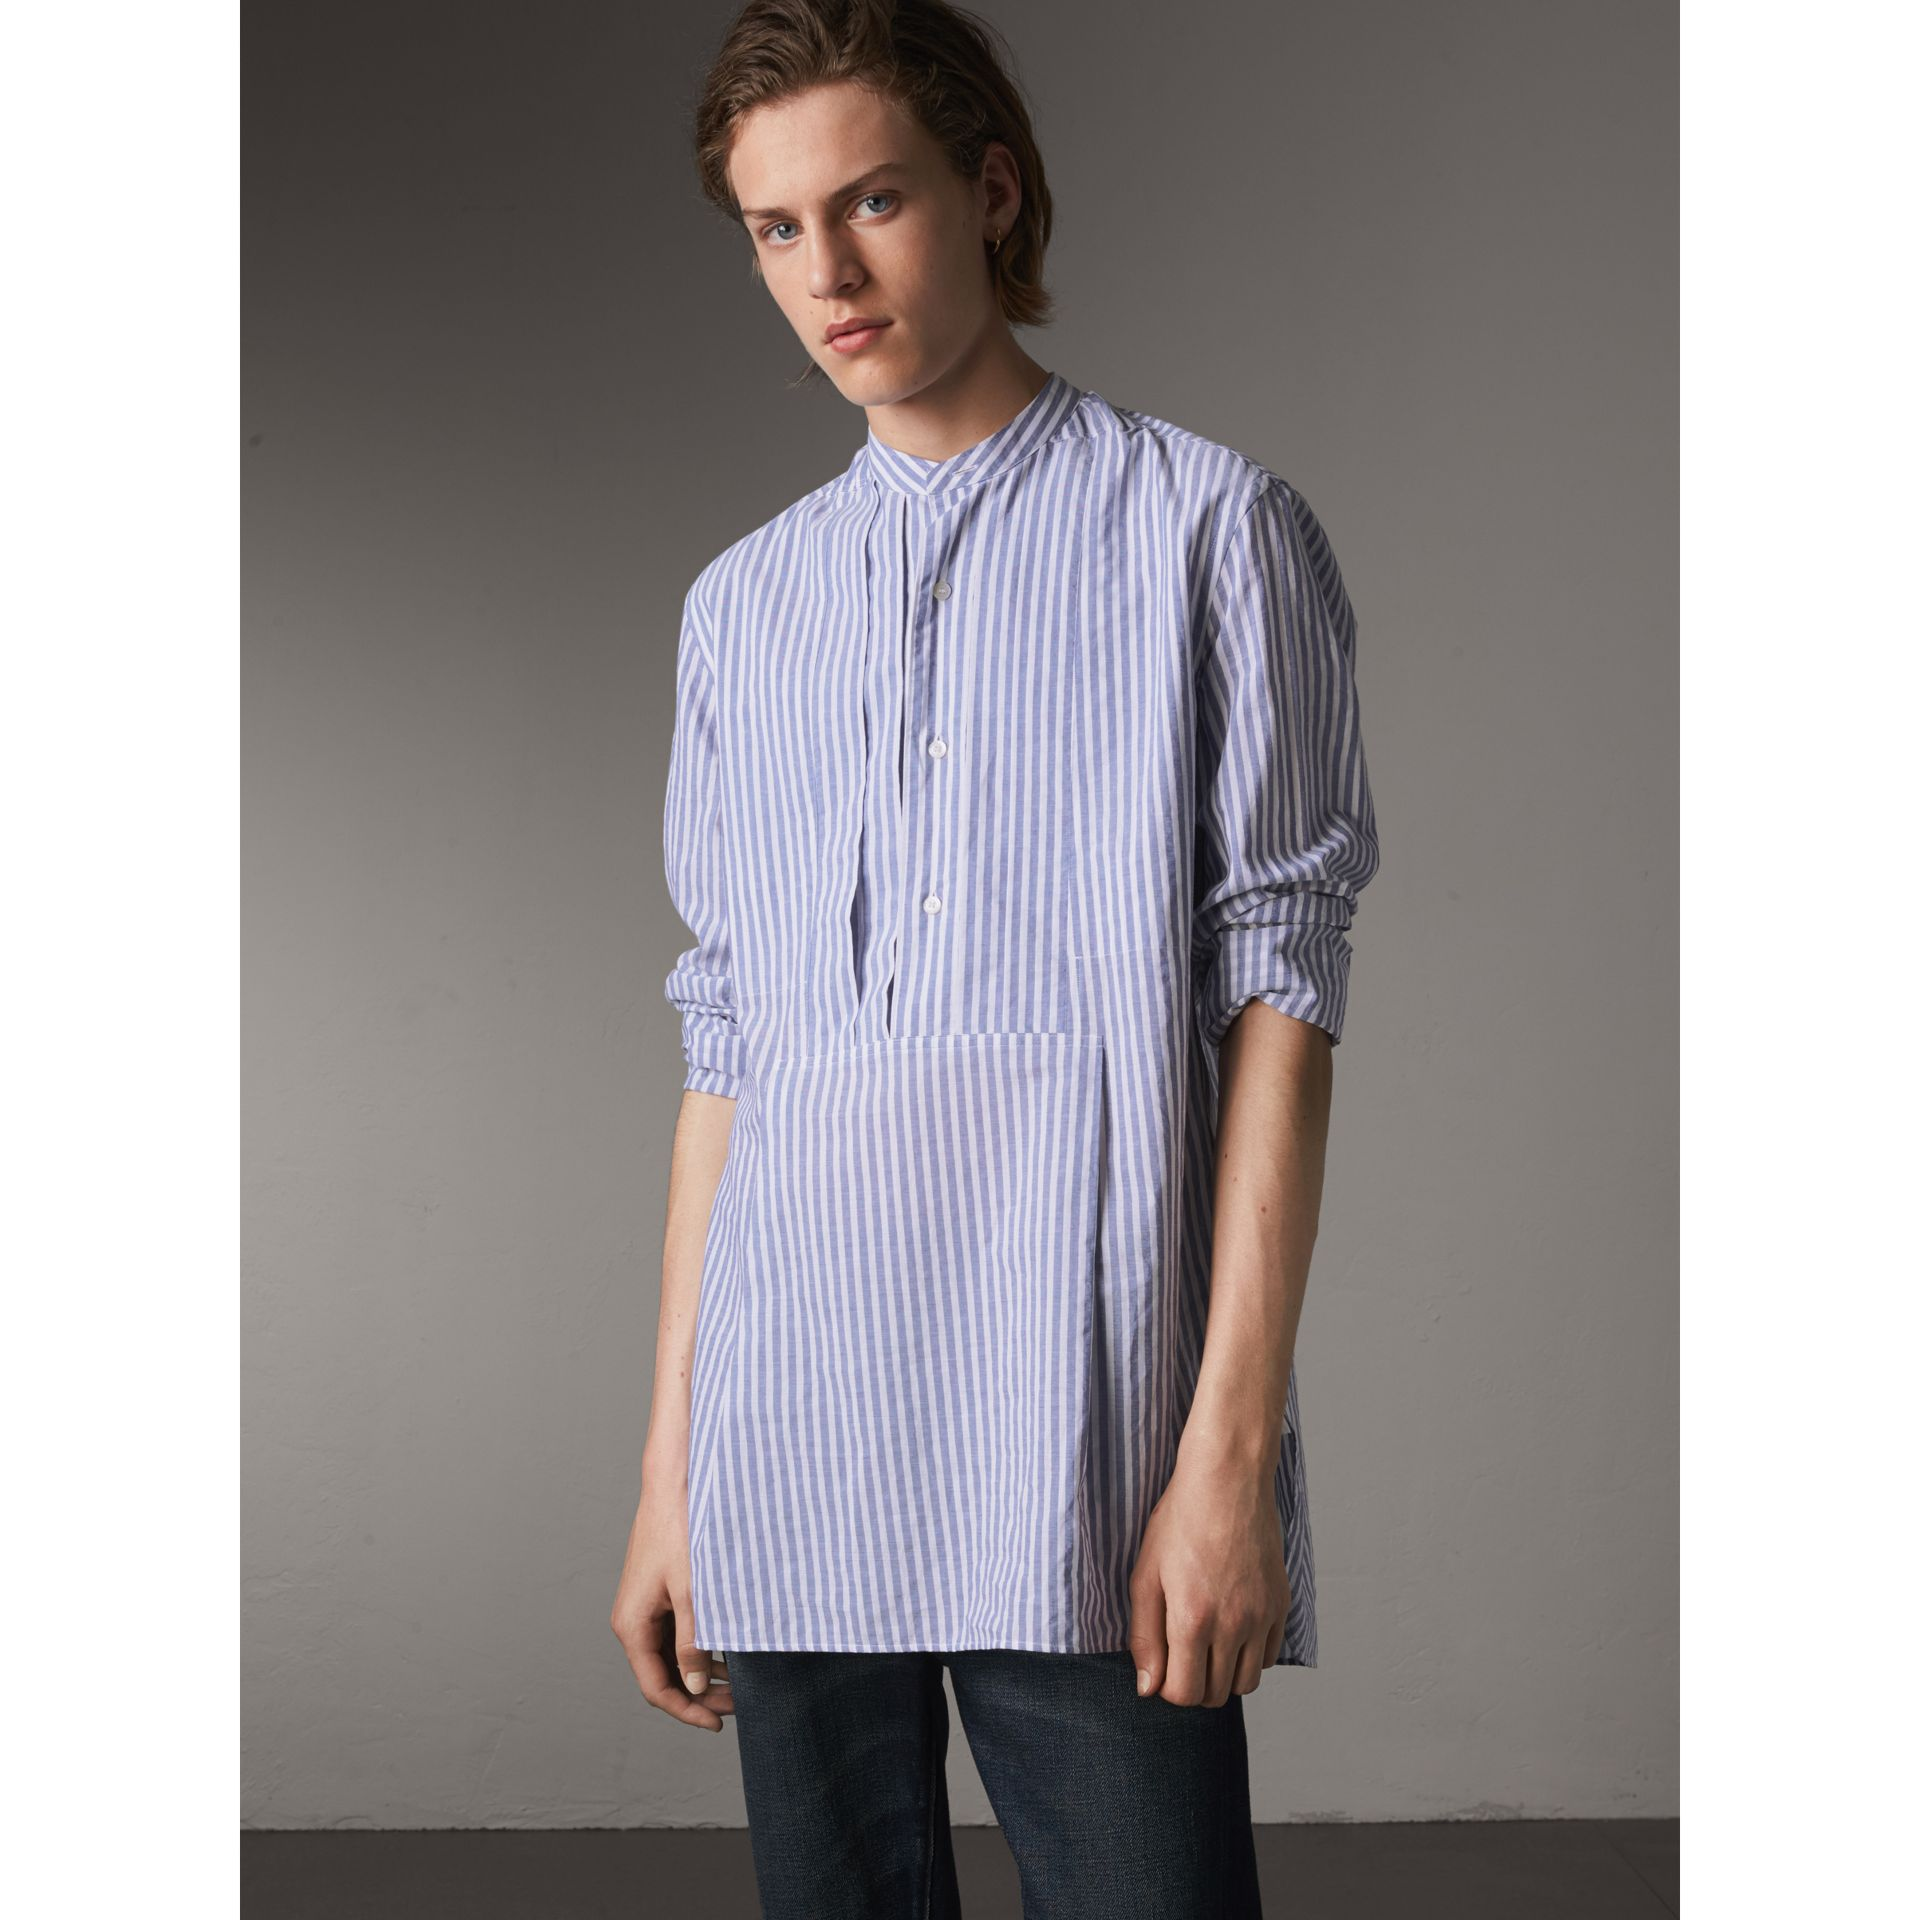 Unisex Pleated Bib Striped Cotton Shirt in Pale Blue/white - Men | Burberry - gallery image 1